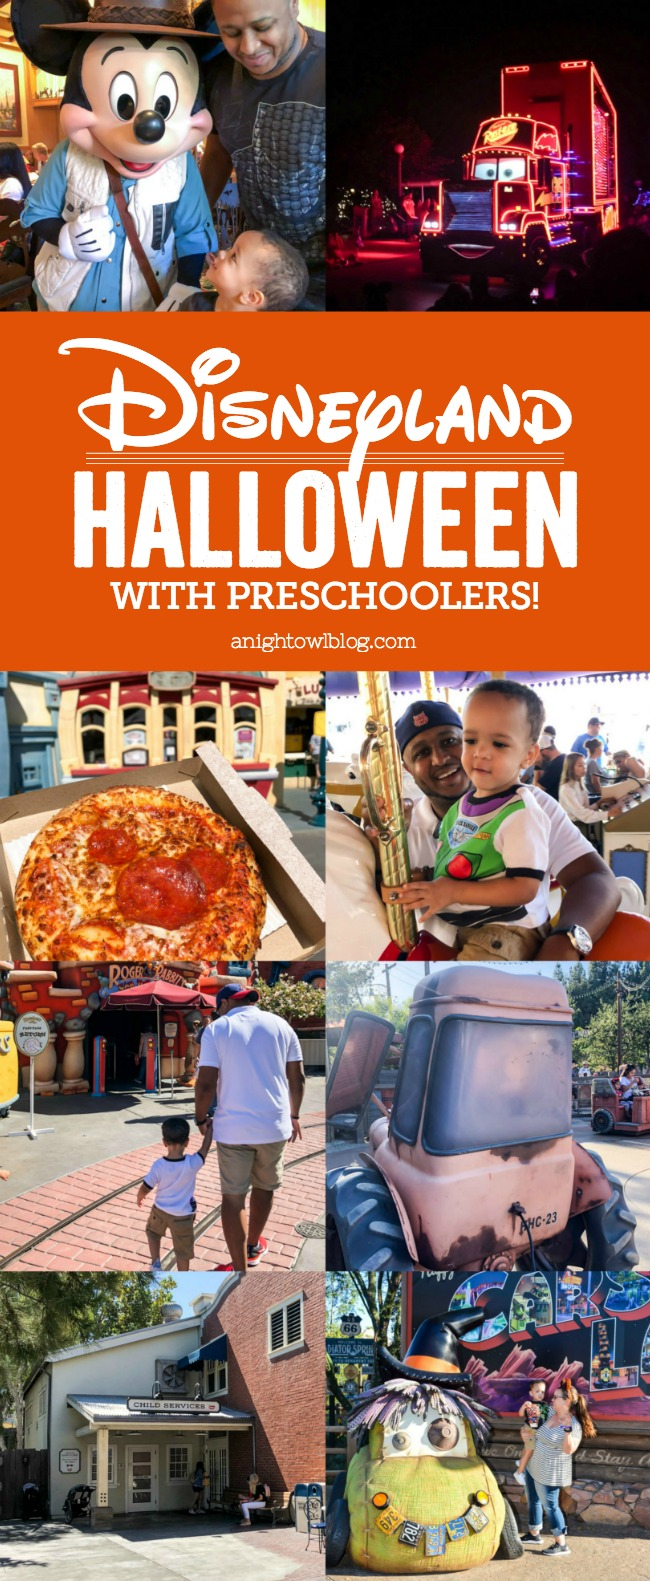 From Rides and Attractions to Character Experiences, check out our top things to do during Disney Halloween with preschoolers! #Disneyland #HalloweenTime